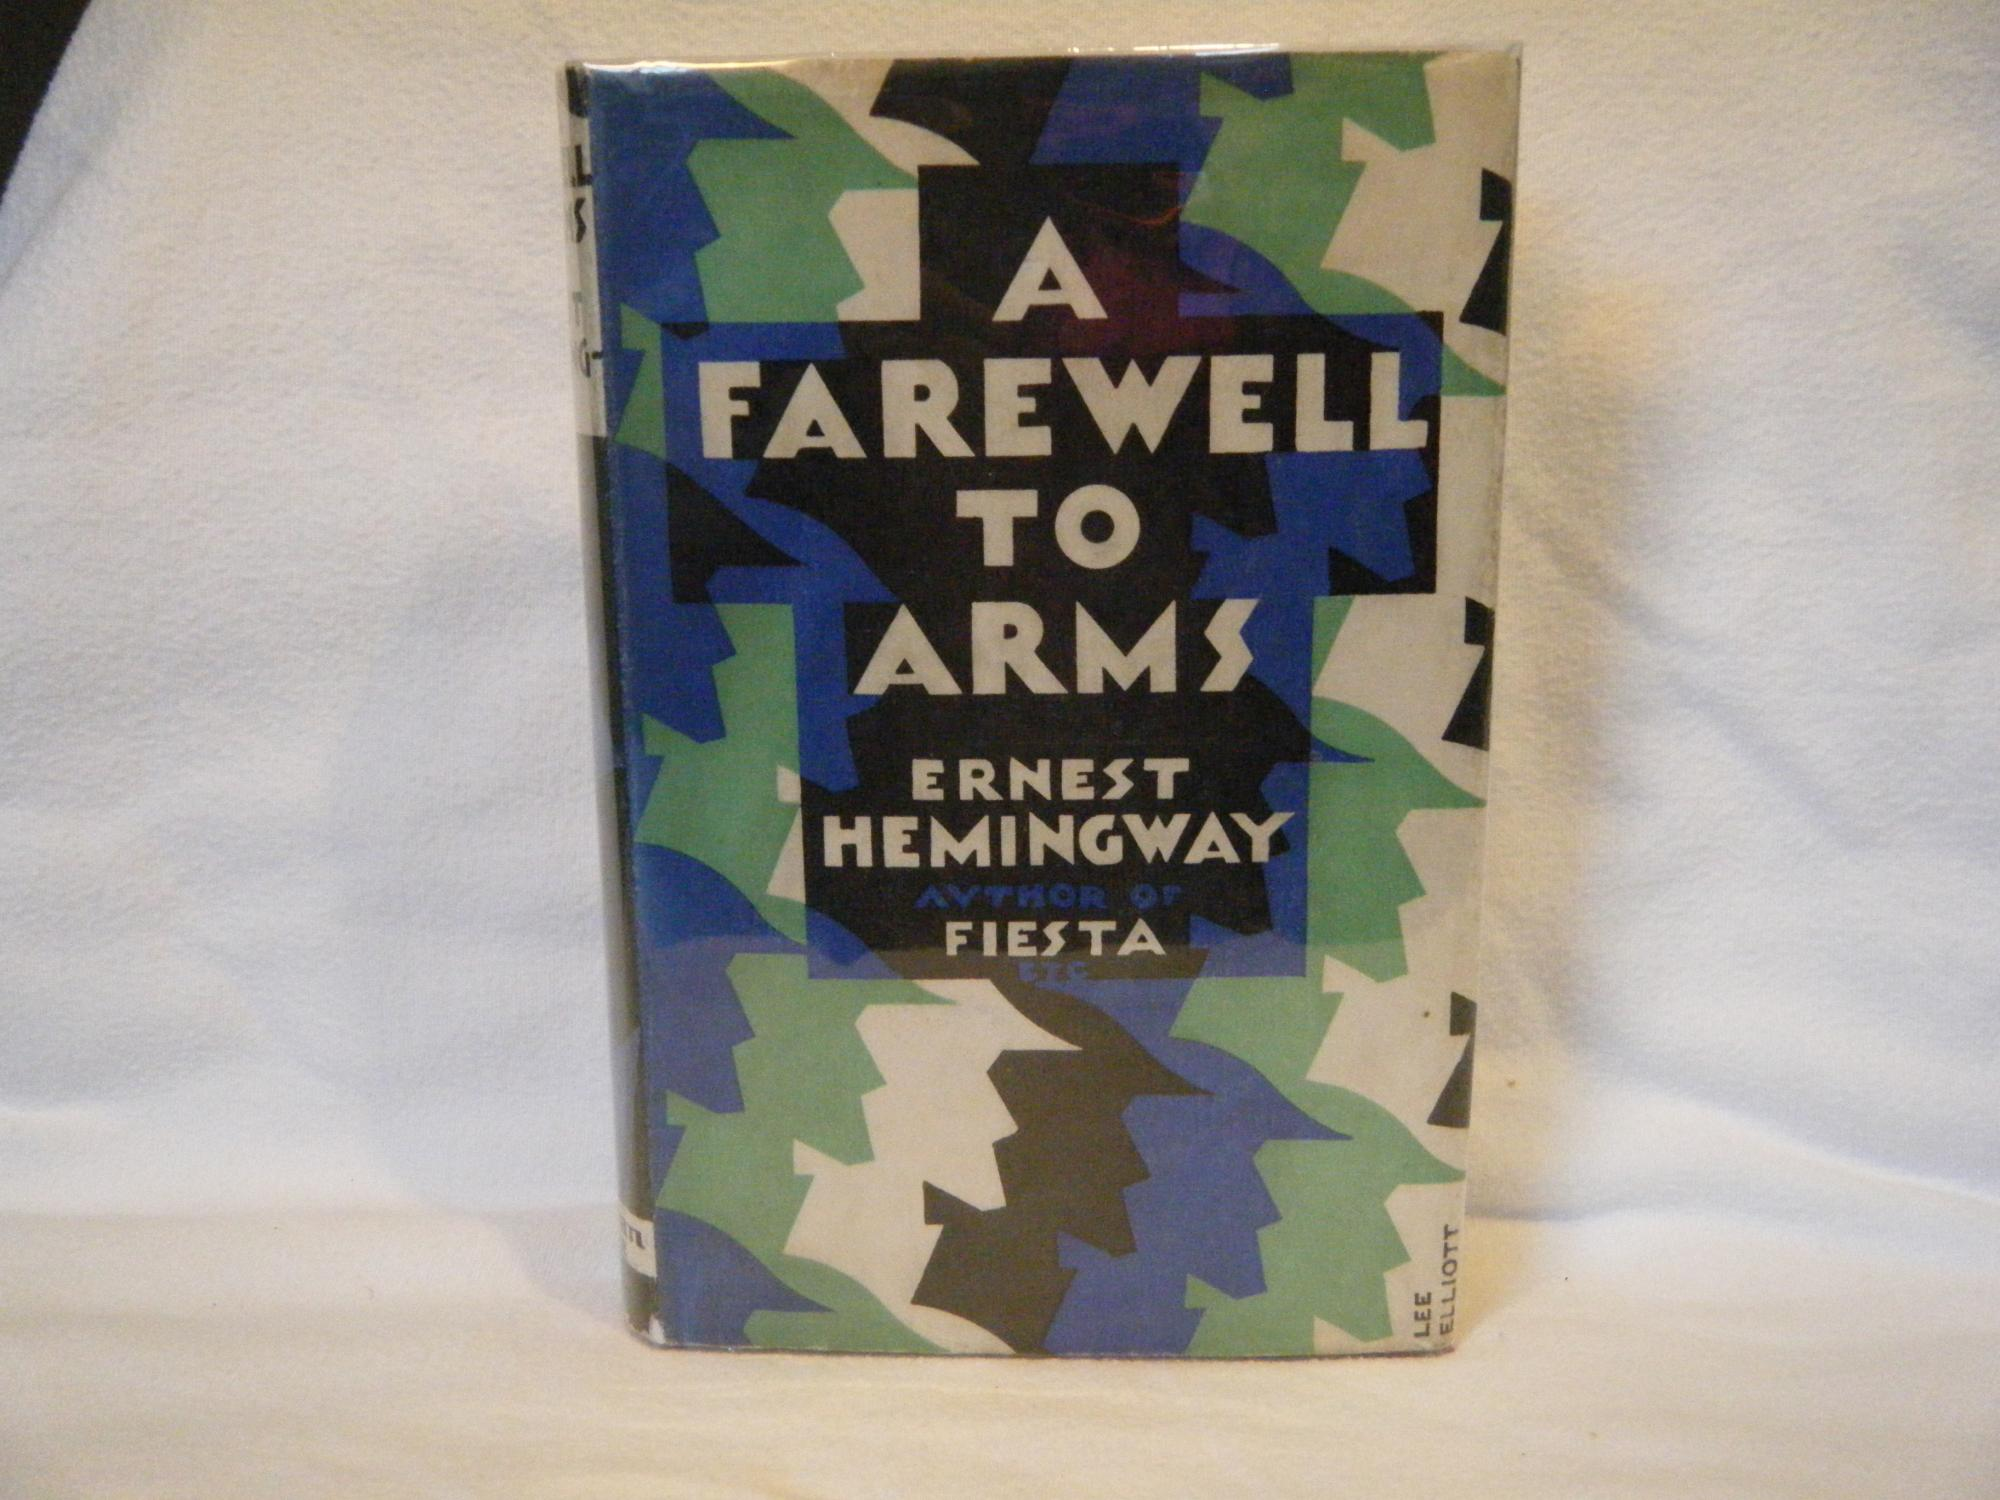 the style of a farewell to arms by ernest hemingway A farewell to arms is a novel by ernest hemingway set during the italian campaign of world war i the book, published in 1929, is a first-person account of american frederic henry, serving as a lieutenant (tenente) in the ambulance corps of the italian army.